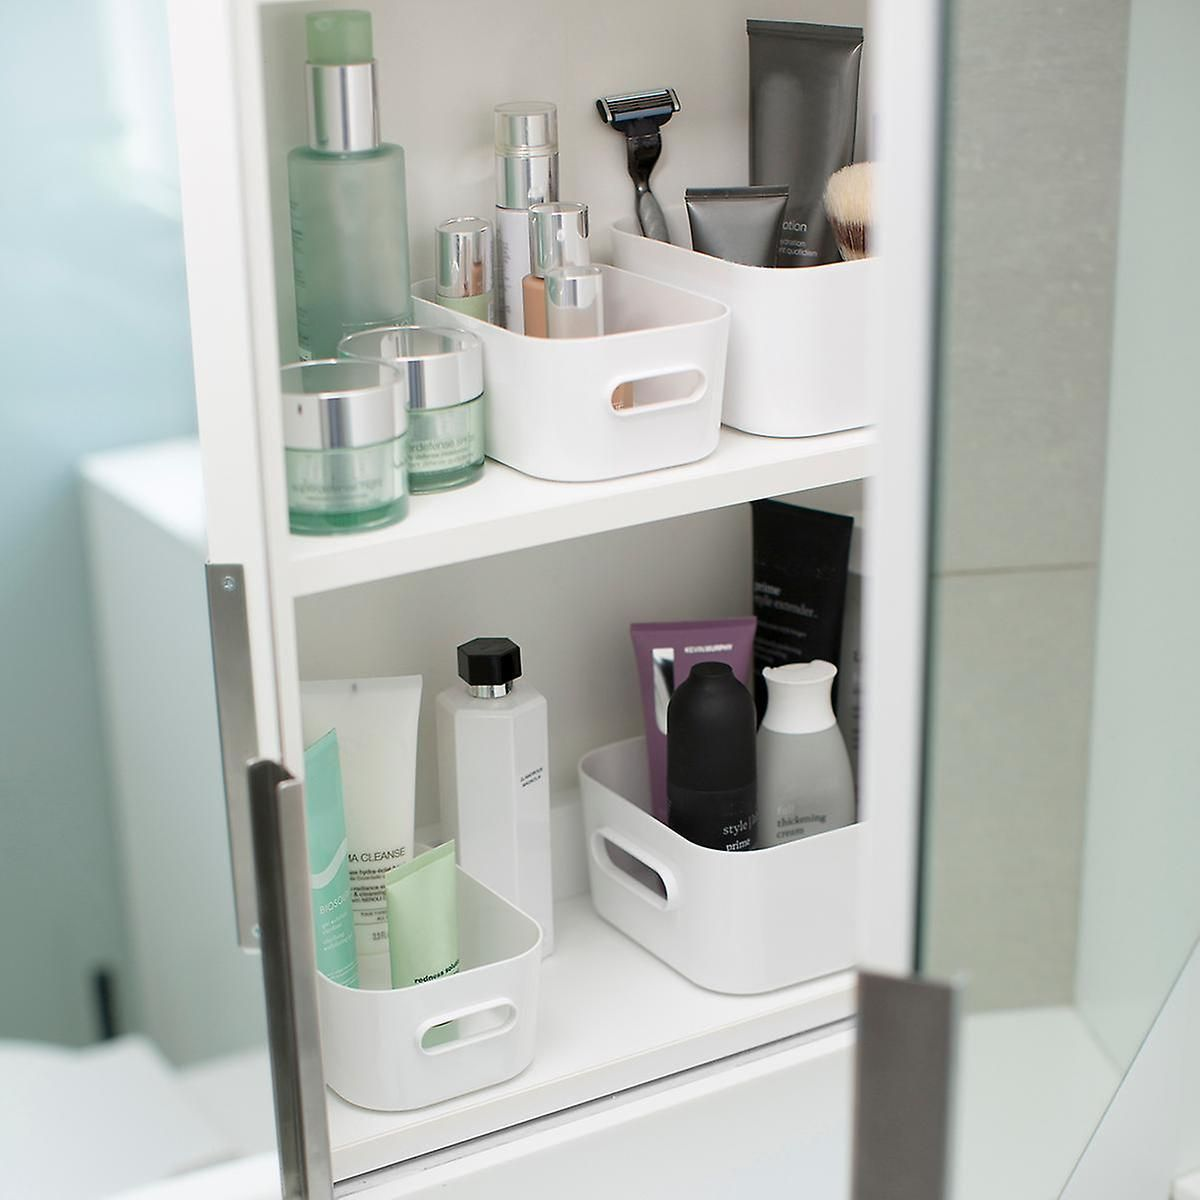 Organize Toiletries Medications Pill Bottle Tubes And Bottles While Utilizing Your M Under Bathroom Sink Storage Under Bathroom Sinks Small Bathroom Storage